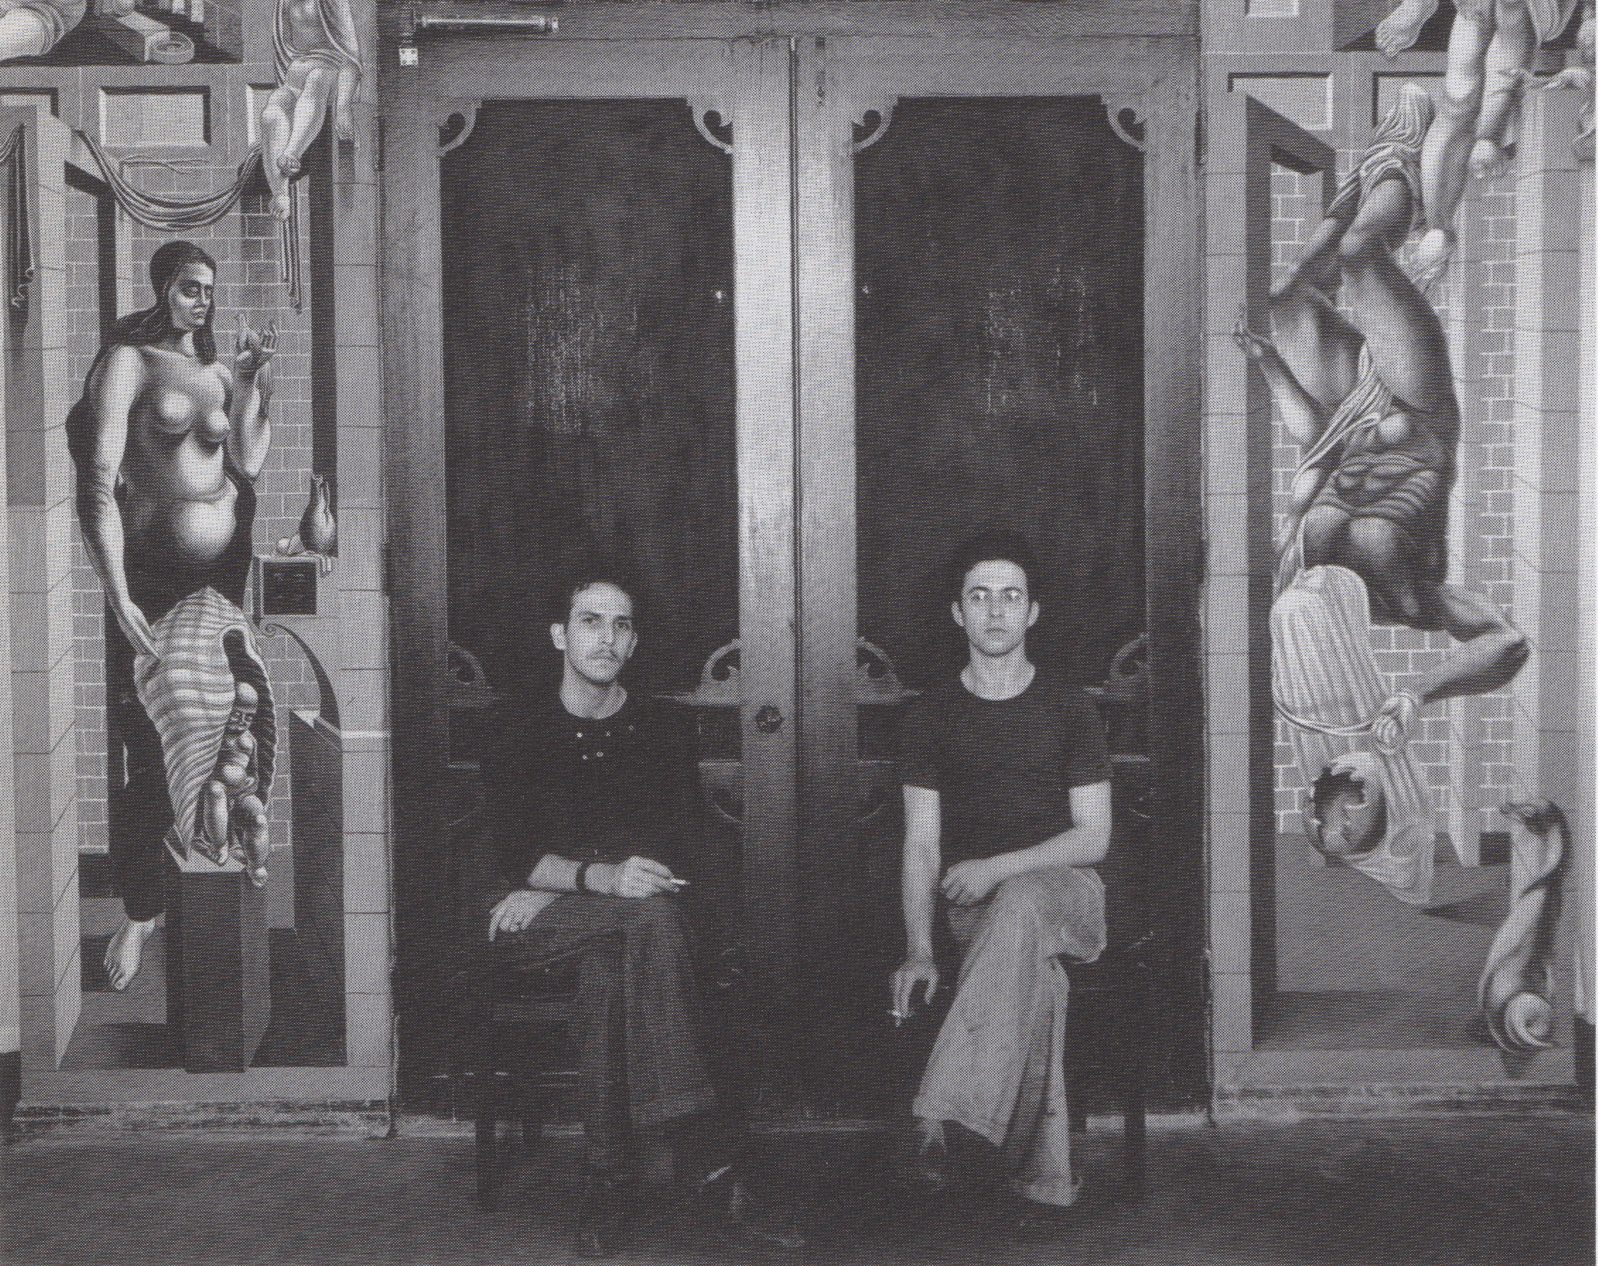 Reuben Kadish and Philip Goldstein (Guston) in 1935 at the City of Hope mural in Duarte, California 1935.